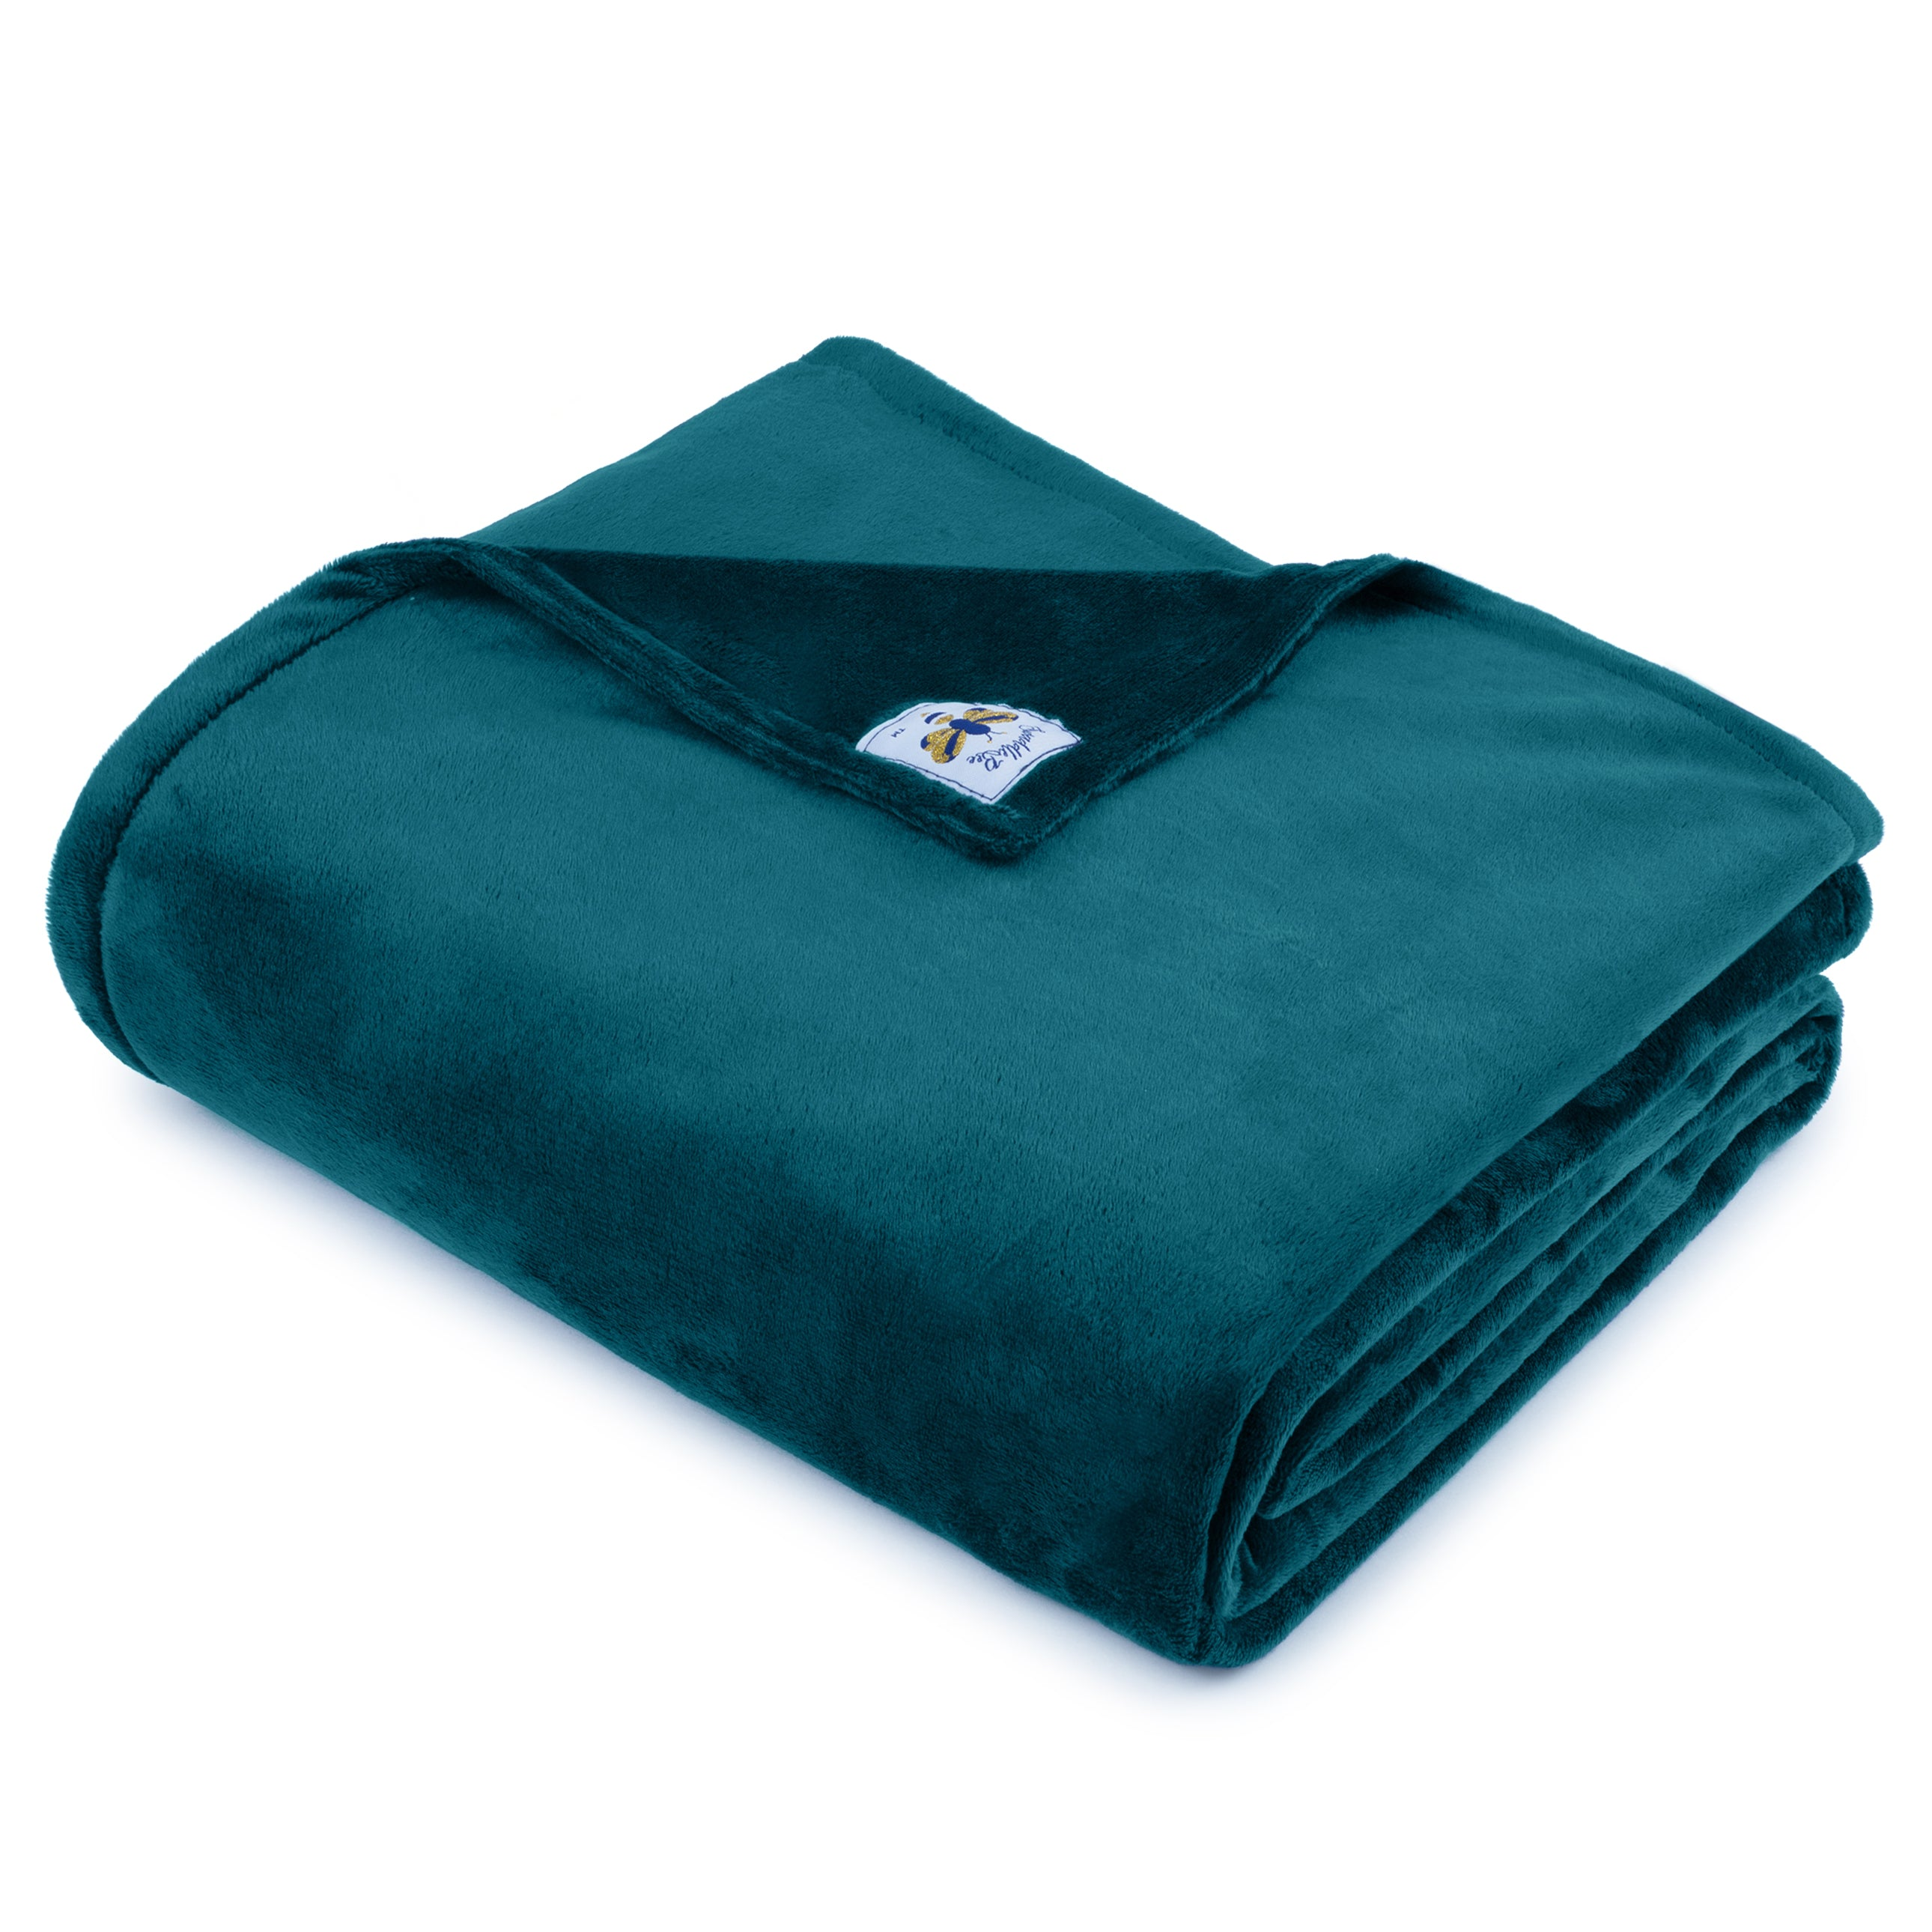 BiggerBee Minky Throw Blanket TEAL **NEW FABRIC**